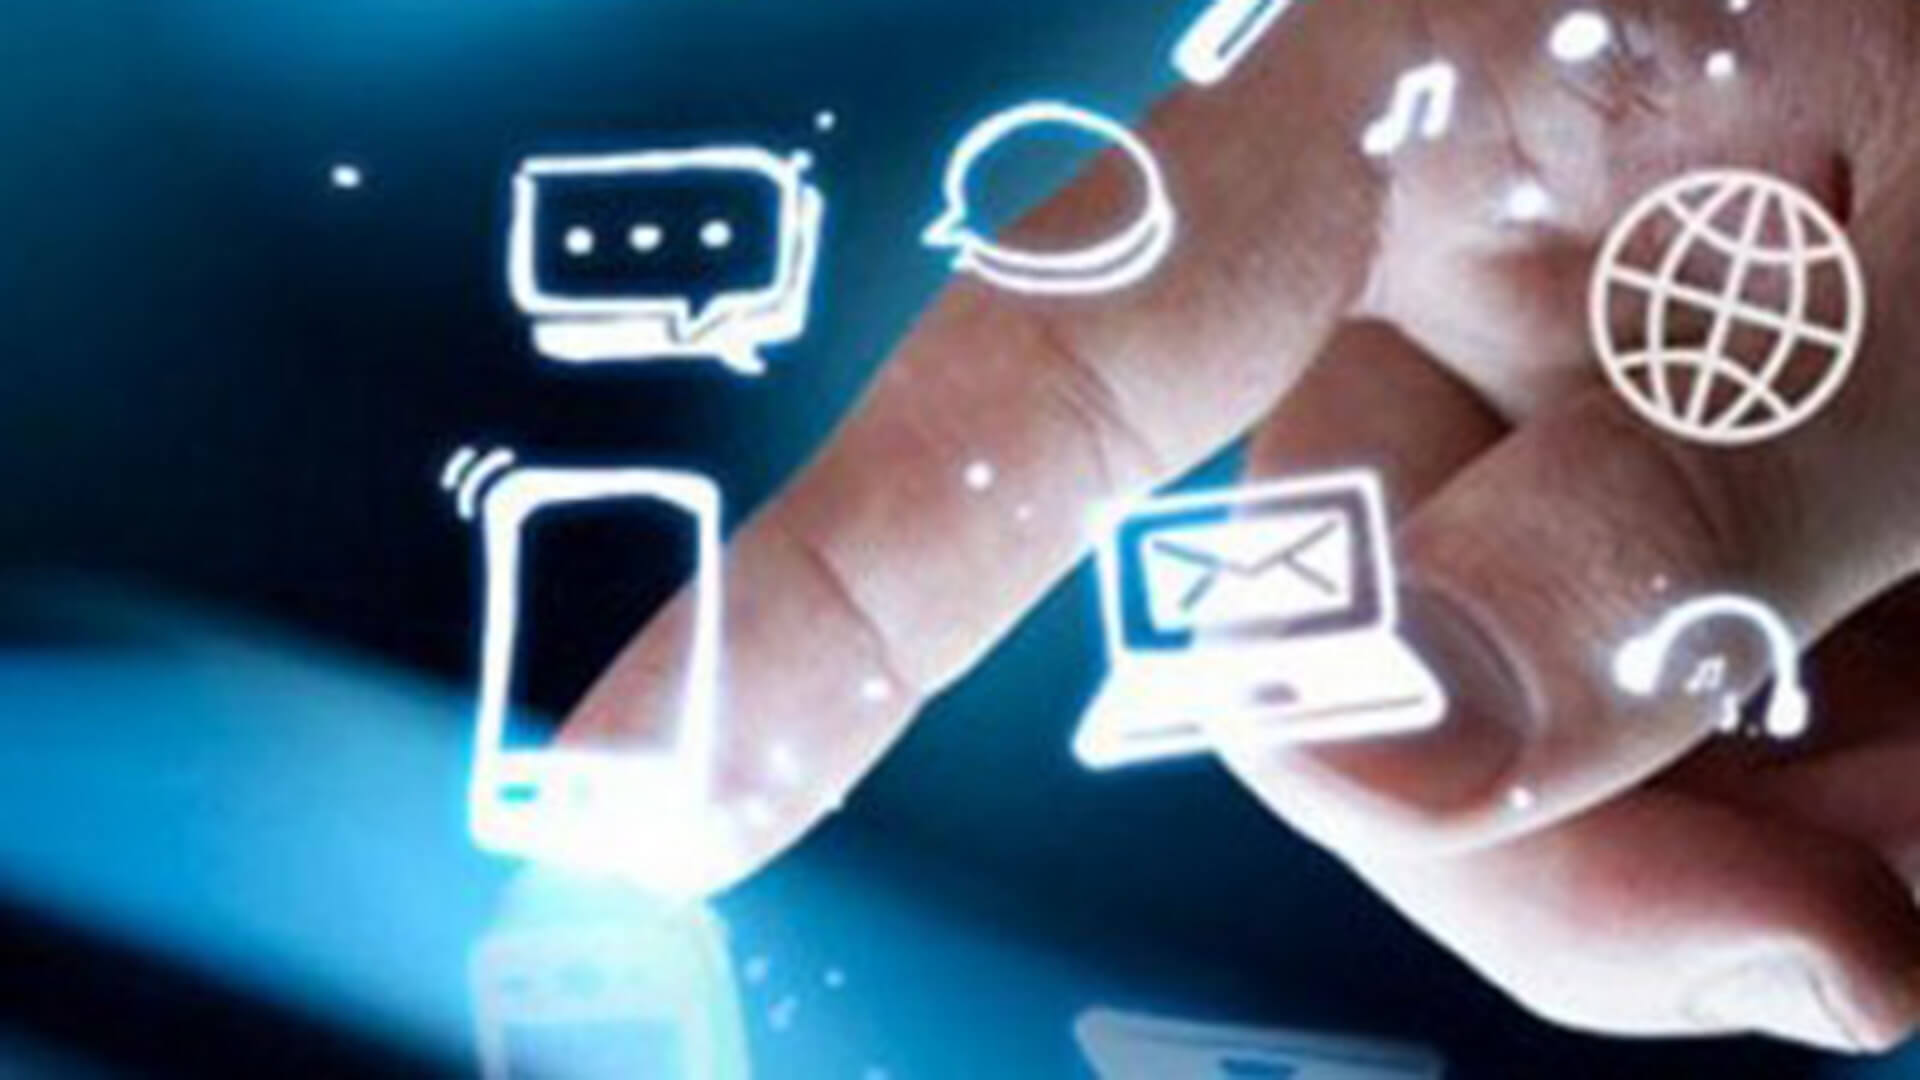 Top 10 Technology Trends for 2015